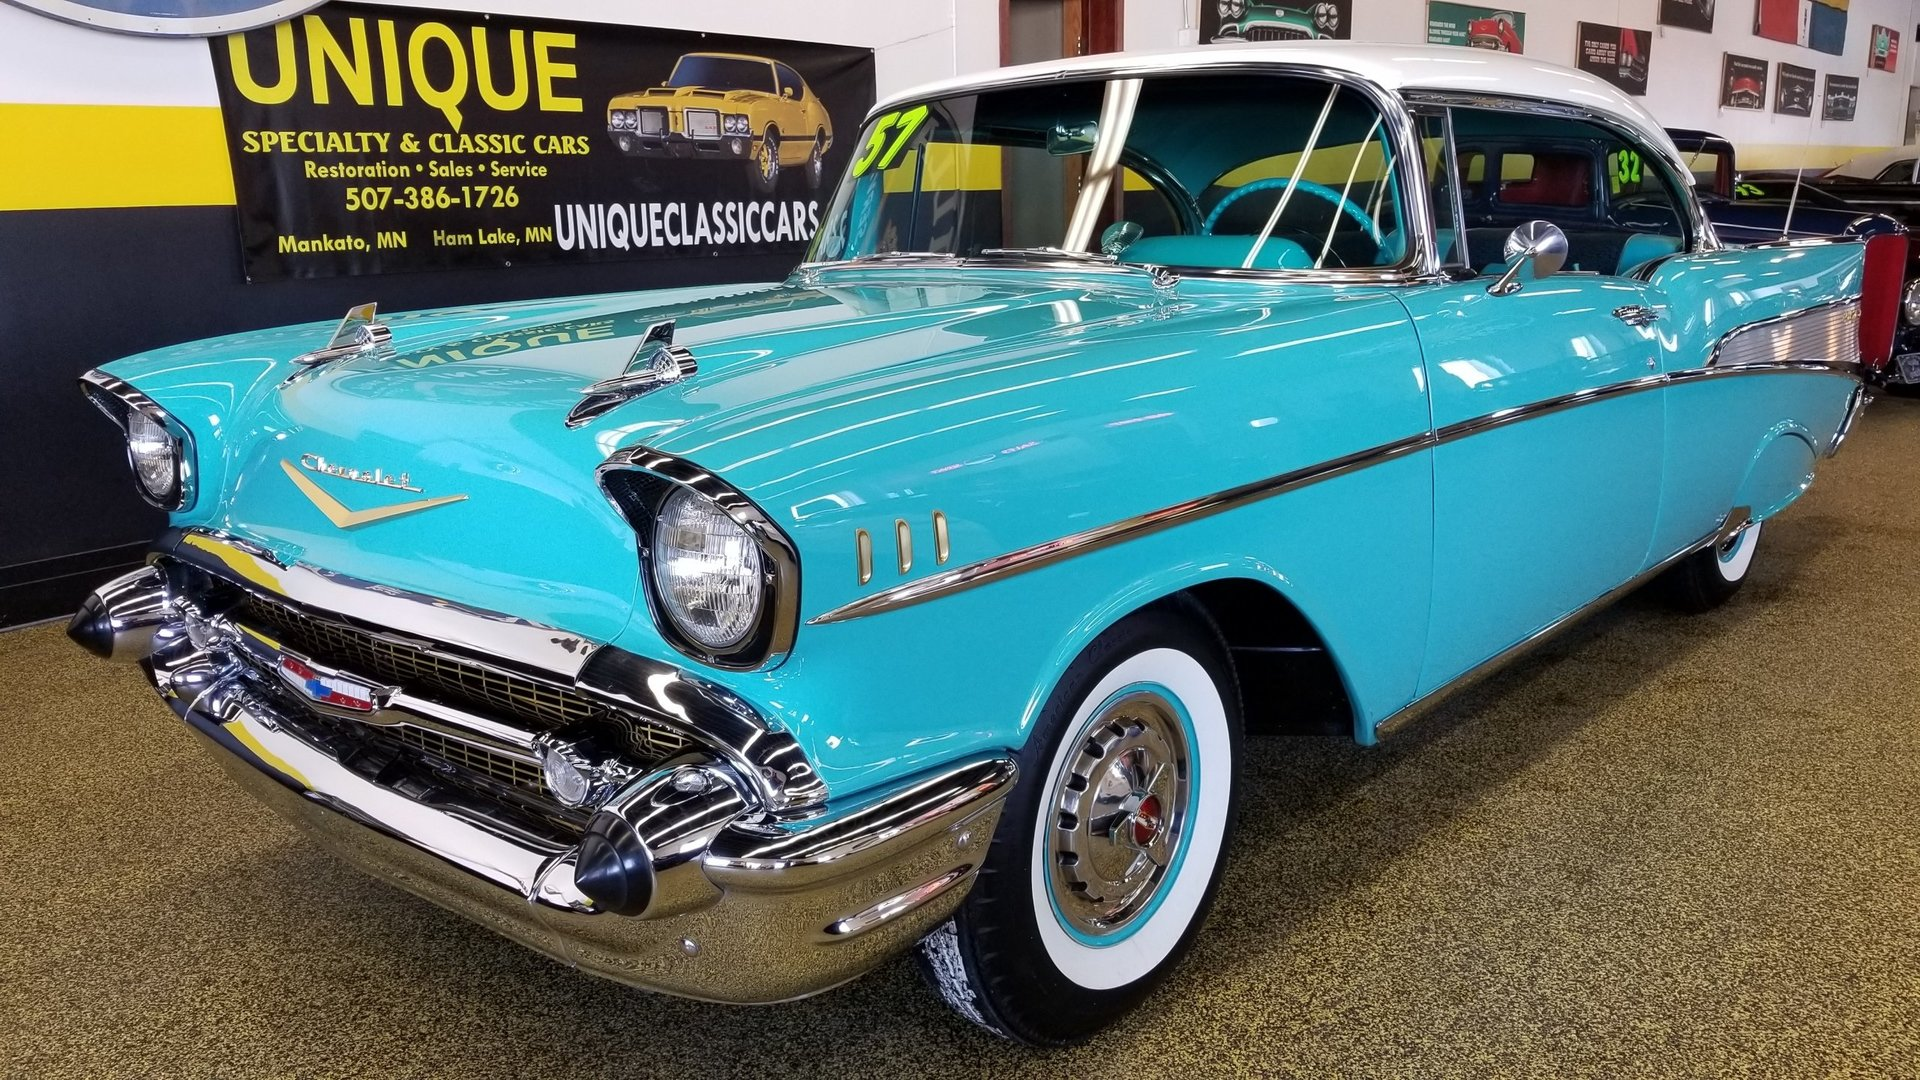 33893a7b027ed_hd_1957-chevrolet-bel-air